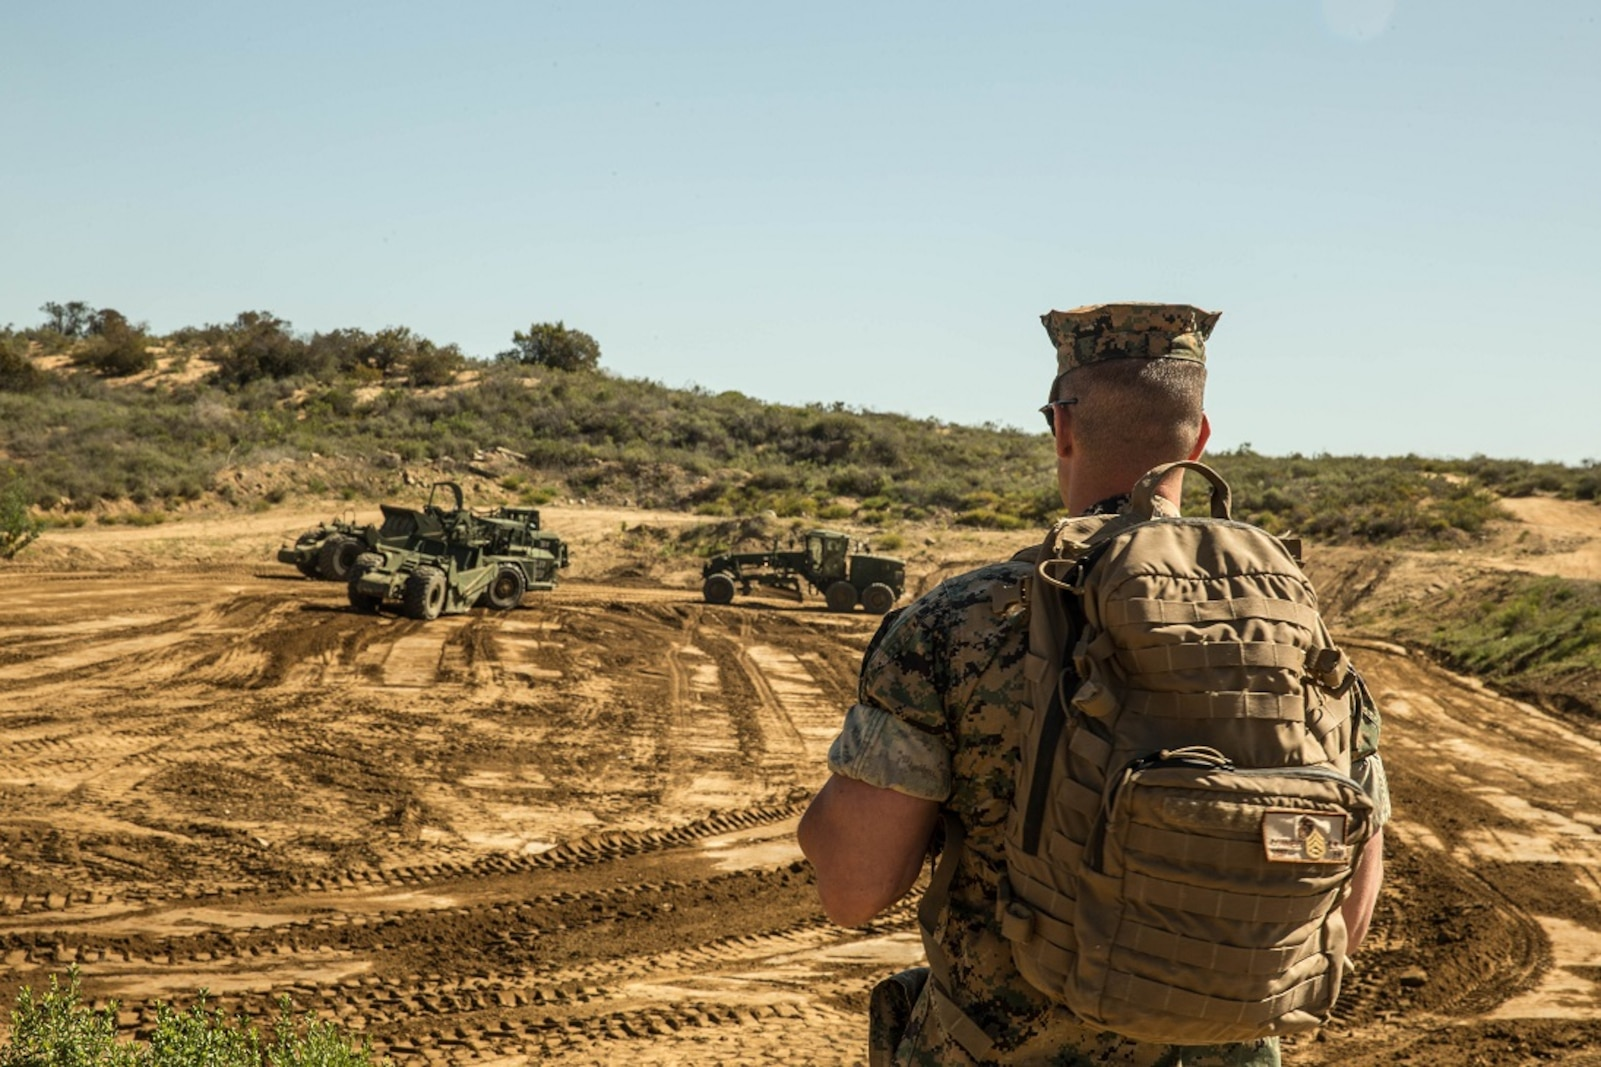 7th Engineer Support Battalion - Dig Site Exercise